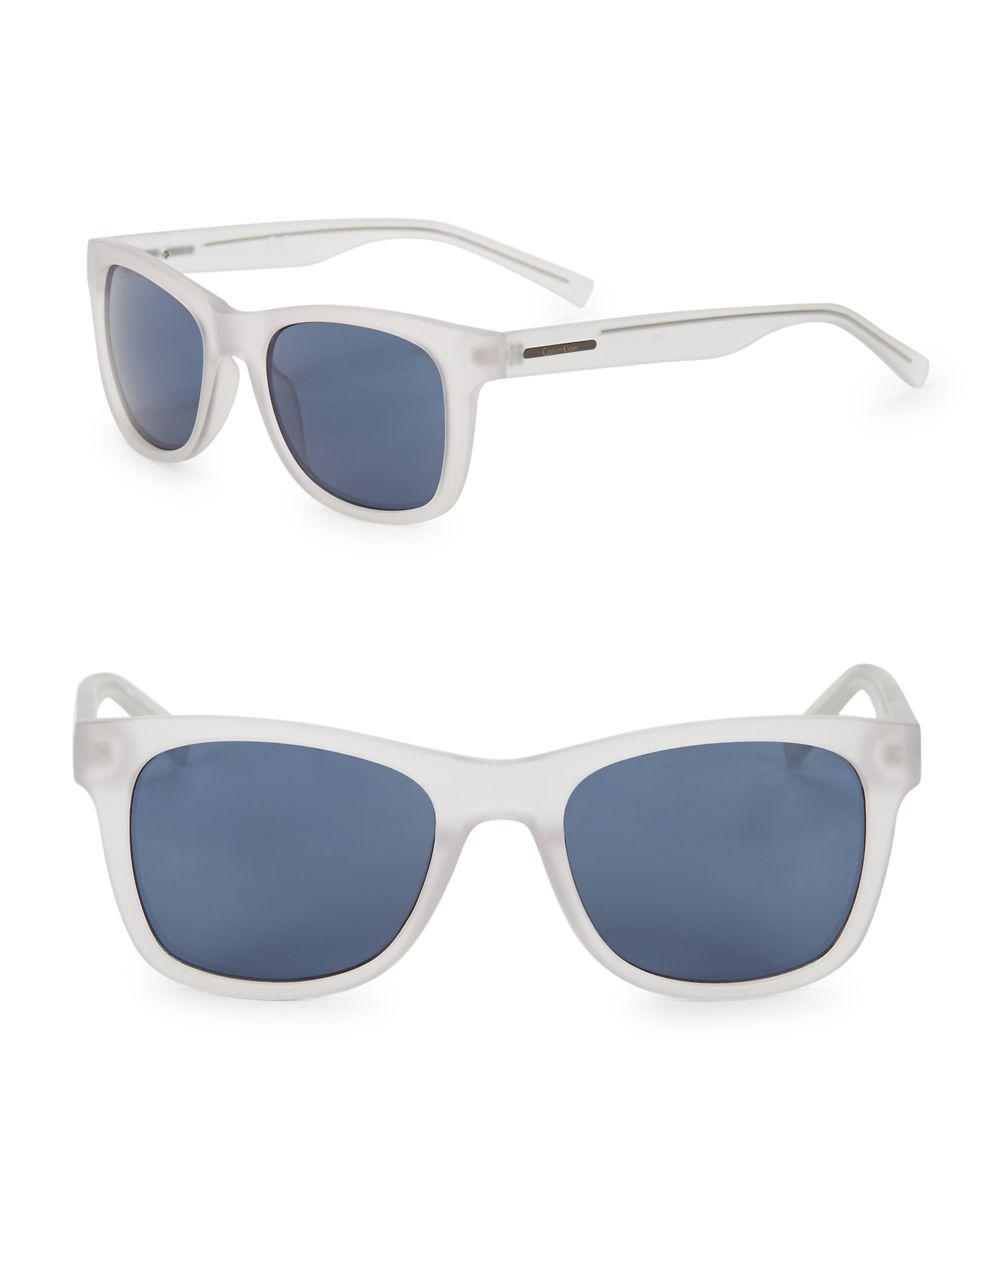 4ac9465fbc Lyst - Calvin Klein 52mm Square Logo Sunglasses in Blue for Men